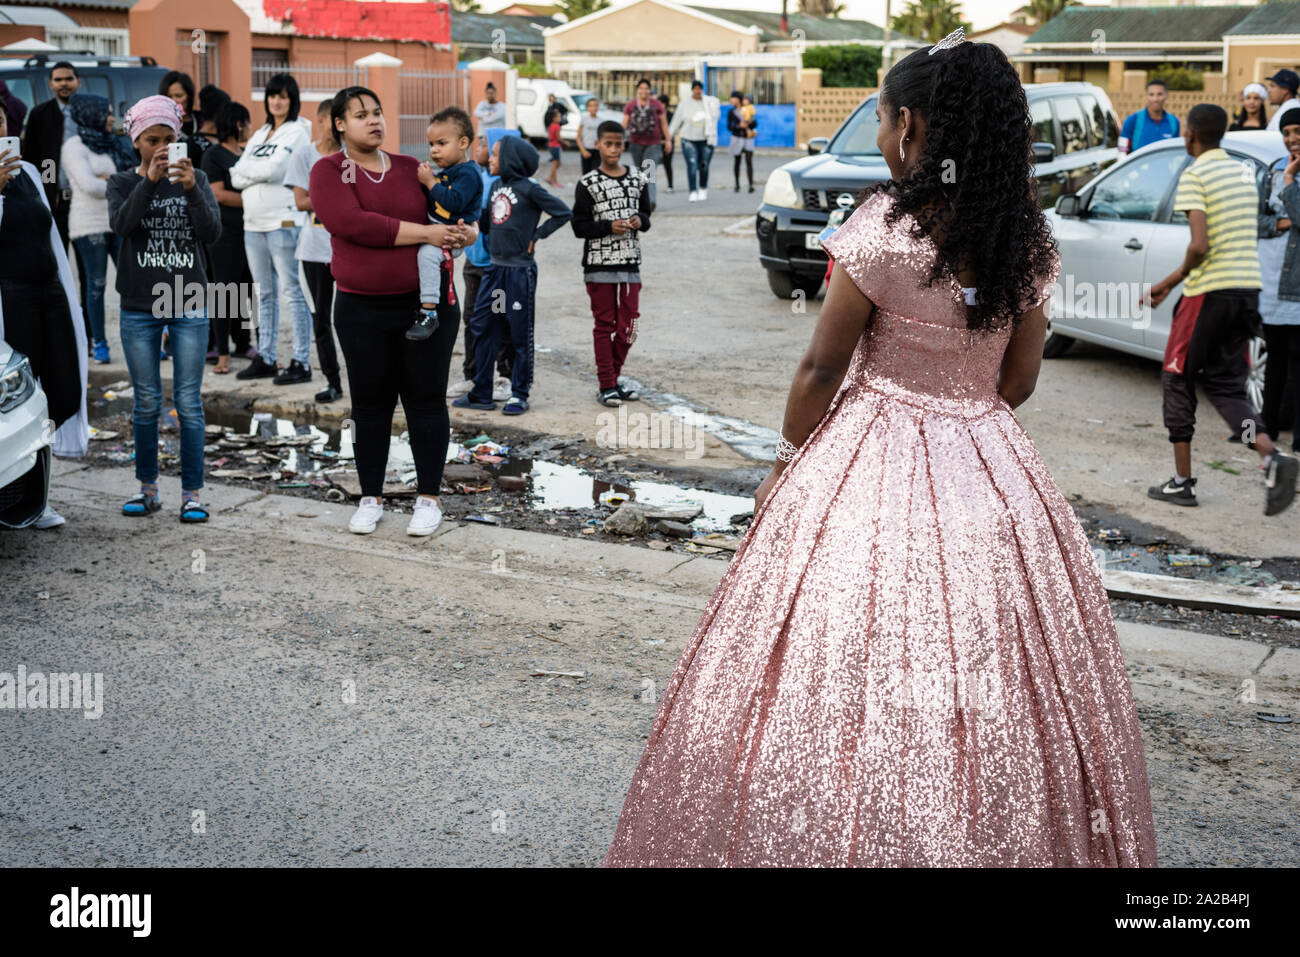 A young girl poses for photographs before attending her school matric dance in South Africa's gang-ridden Cape Town neighbourhood of Hanover Park Stock Photo